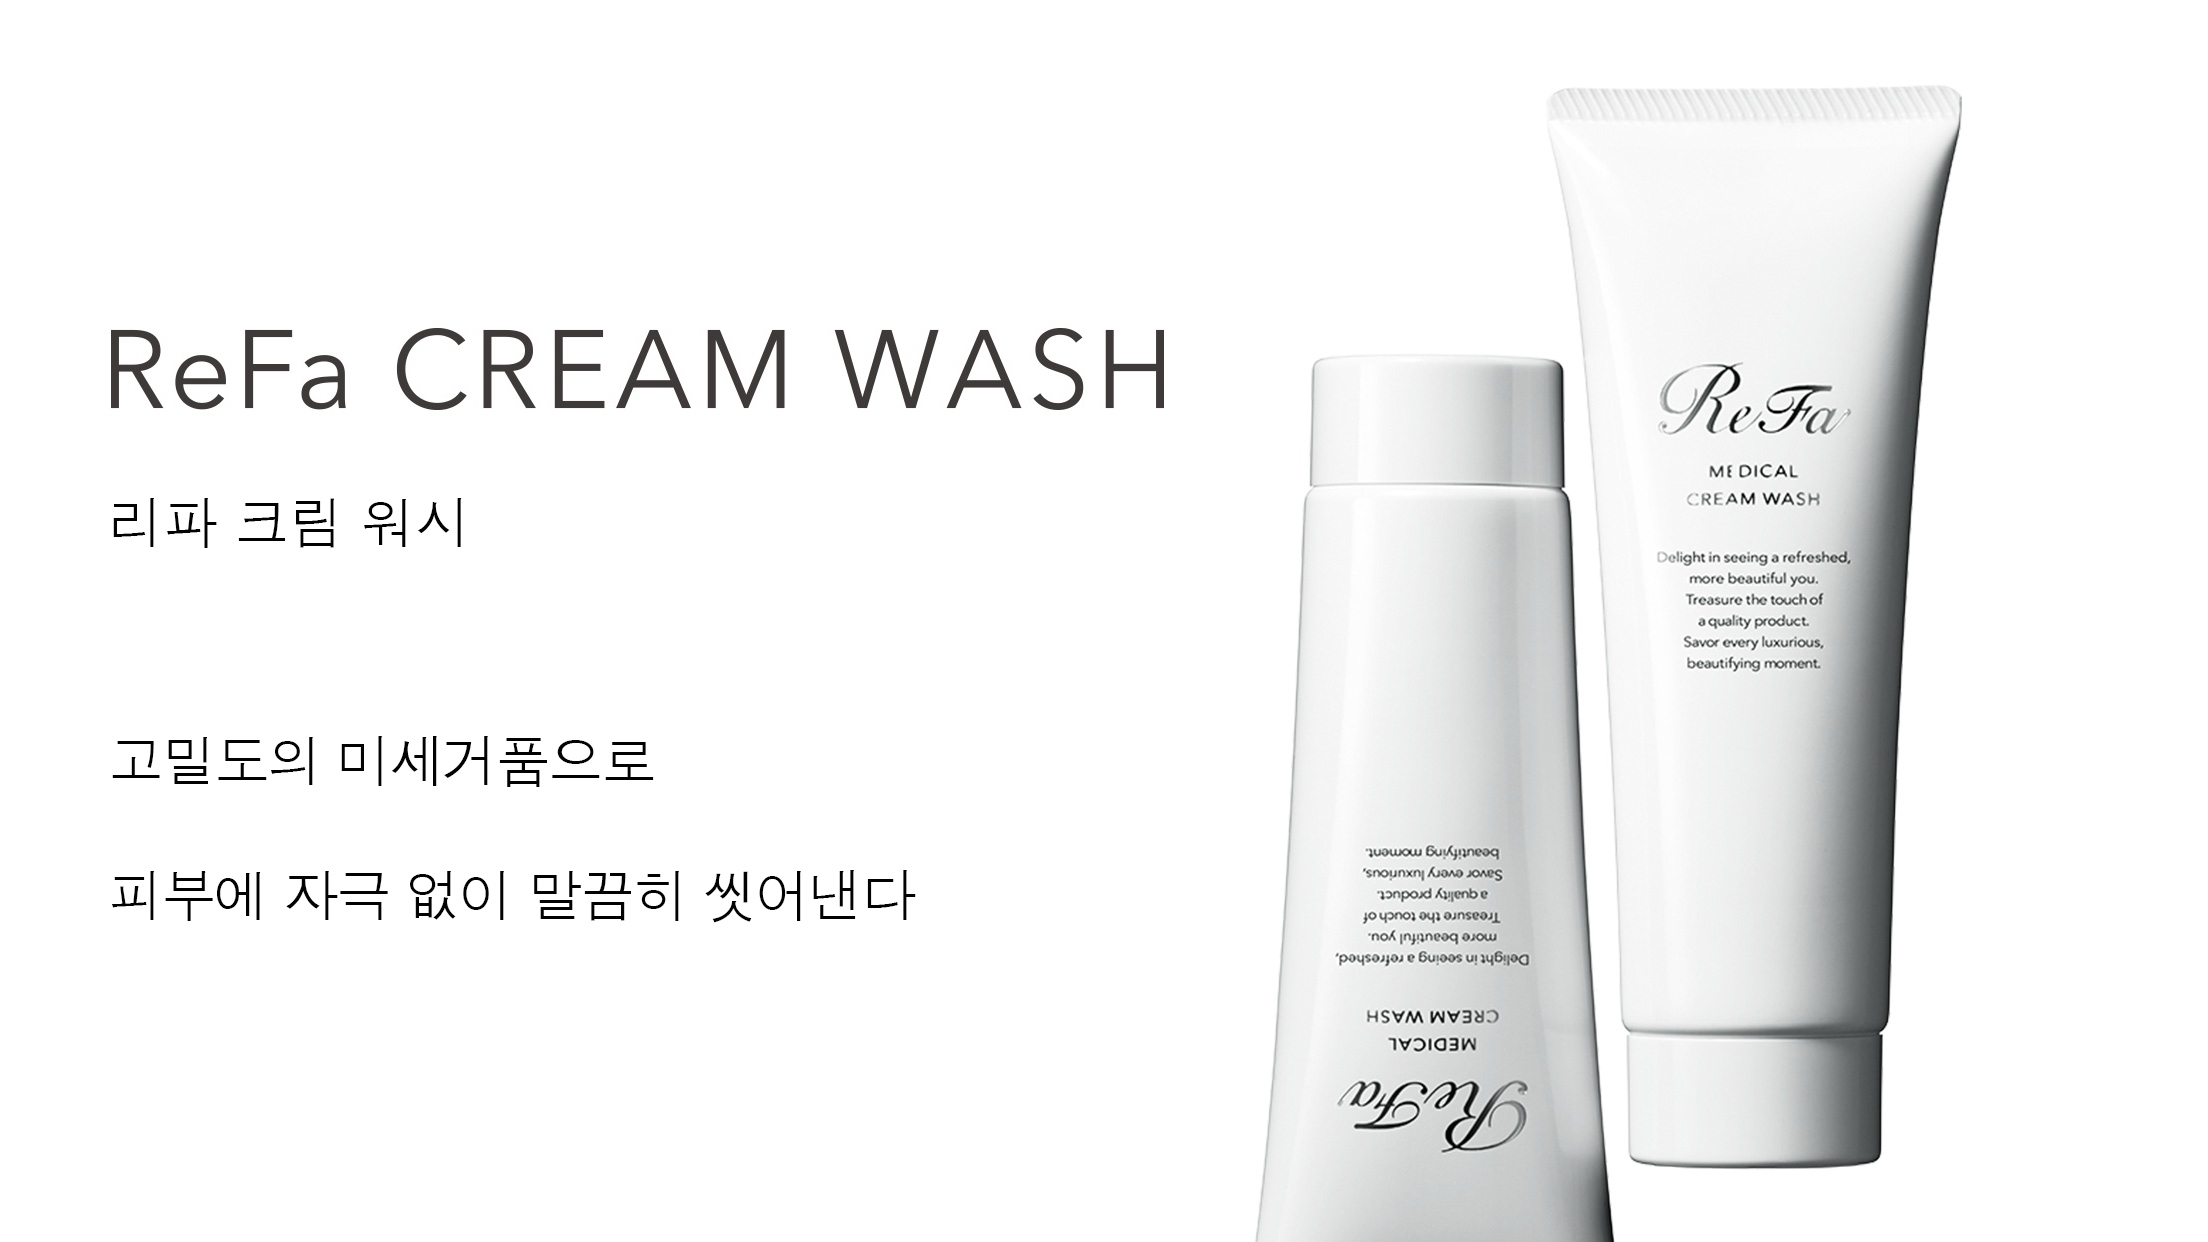 ReFa MEDICAL CREAM WASH(리파 크림 워시)